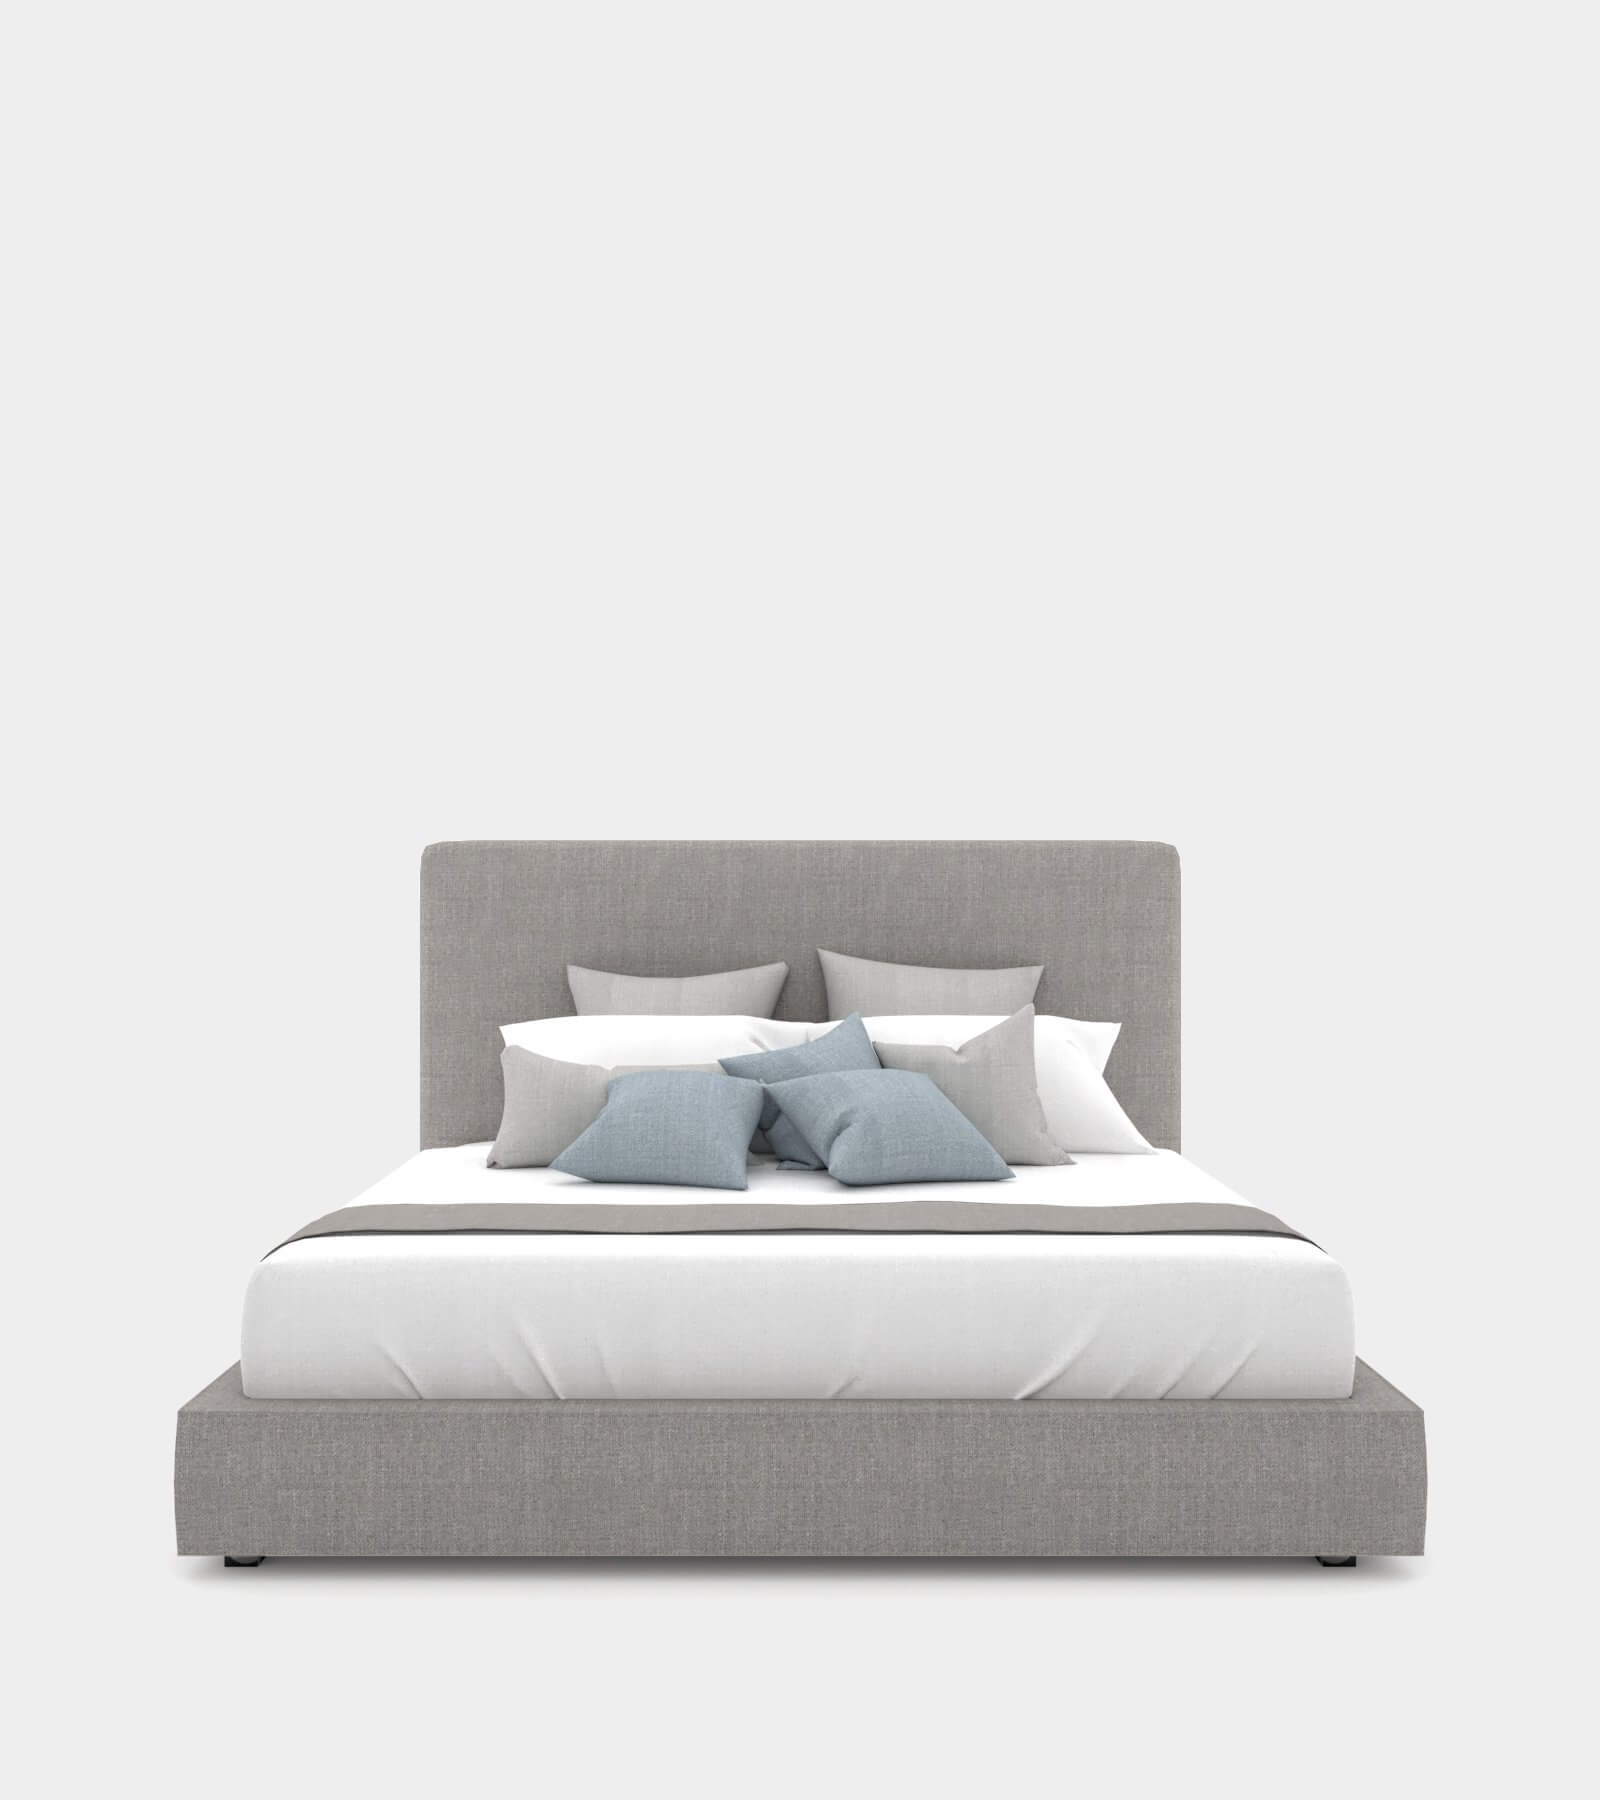 Modern double bed with a bed head 2 - 3D Model